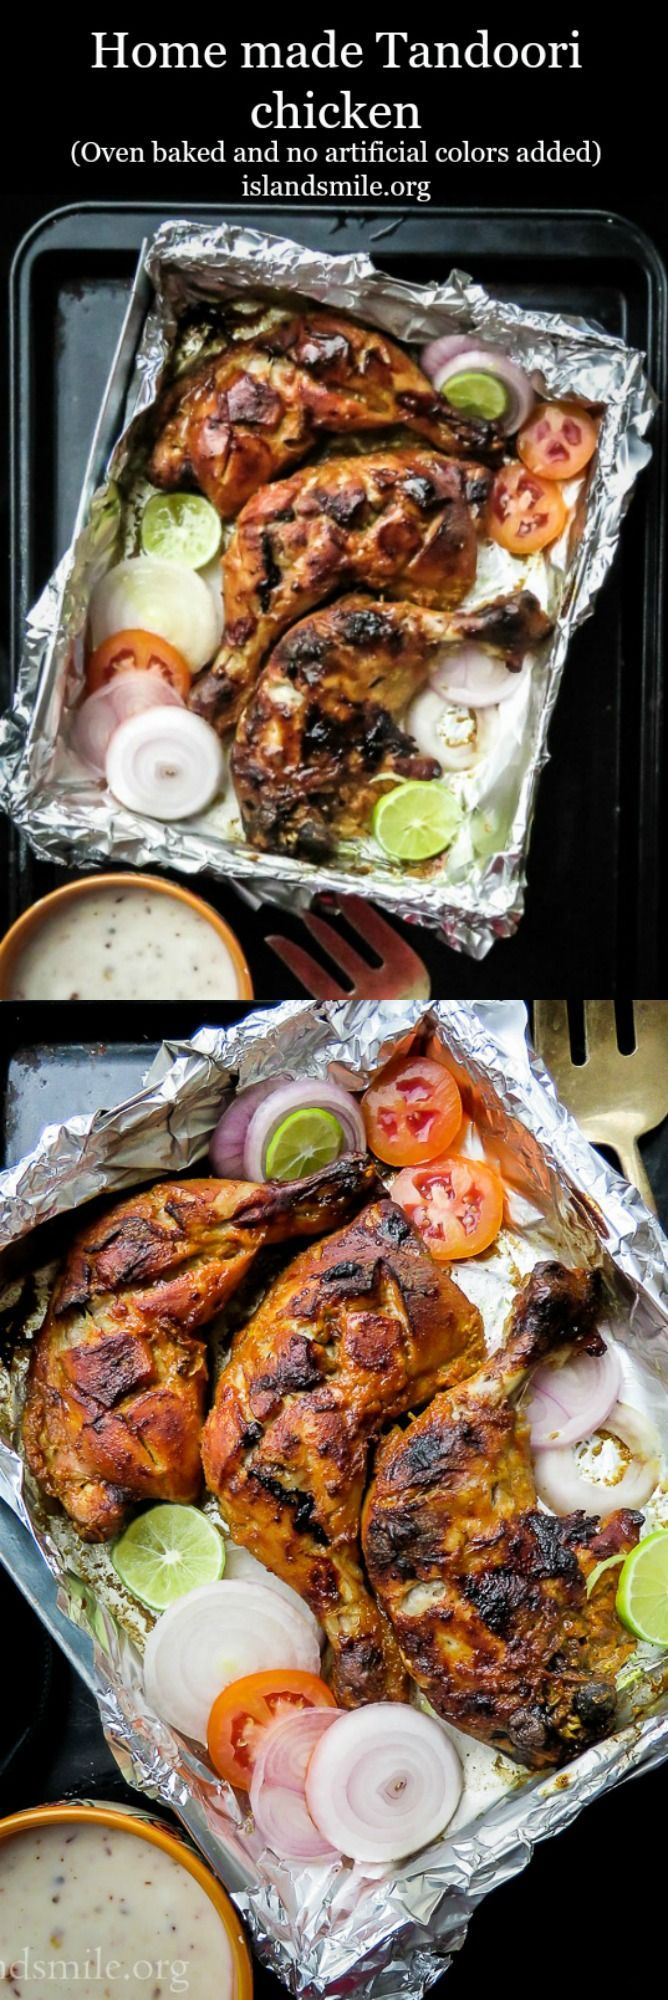 How To Make Tandoori Chicken At Home(oven Baked)